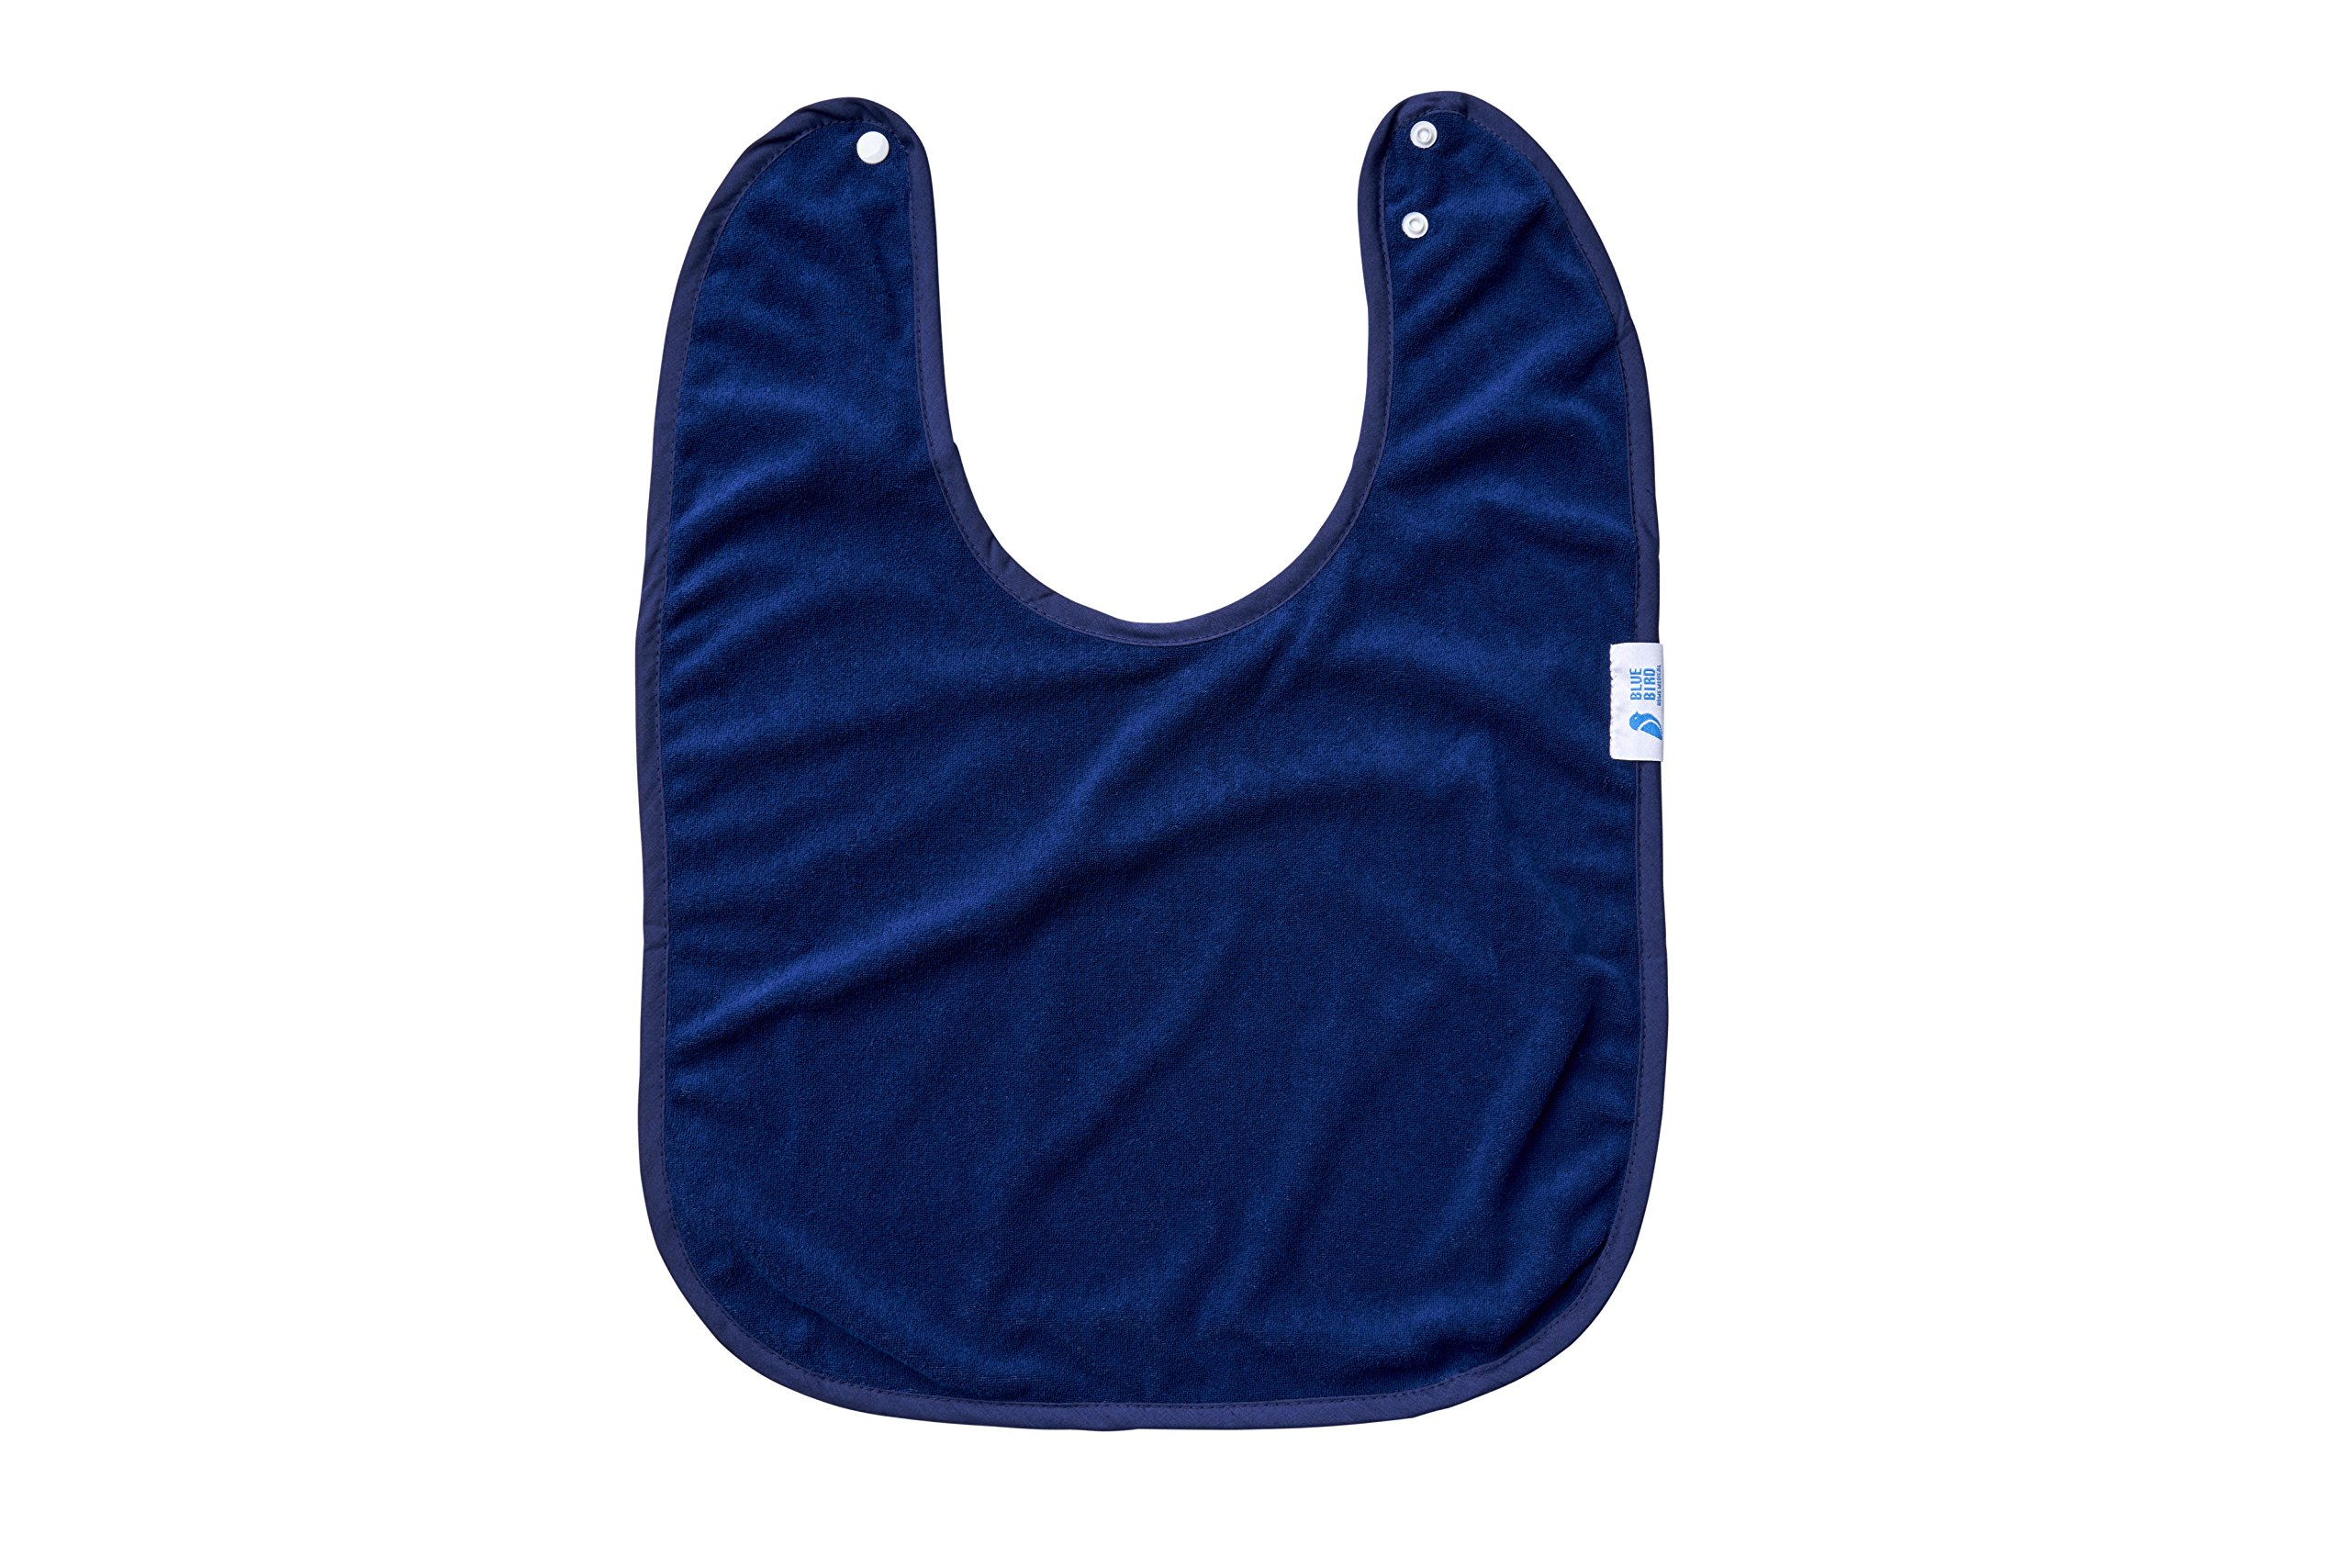 Youth and Adult Waterproof Adapted Bib, Absorbent Clothing Protector - Navy